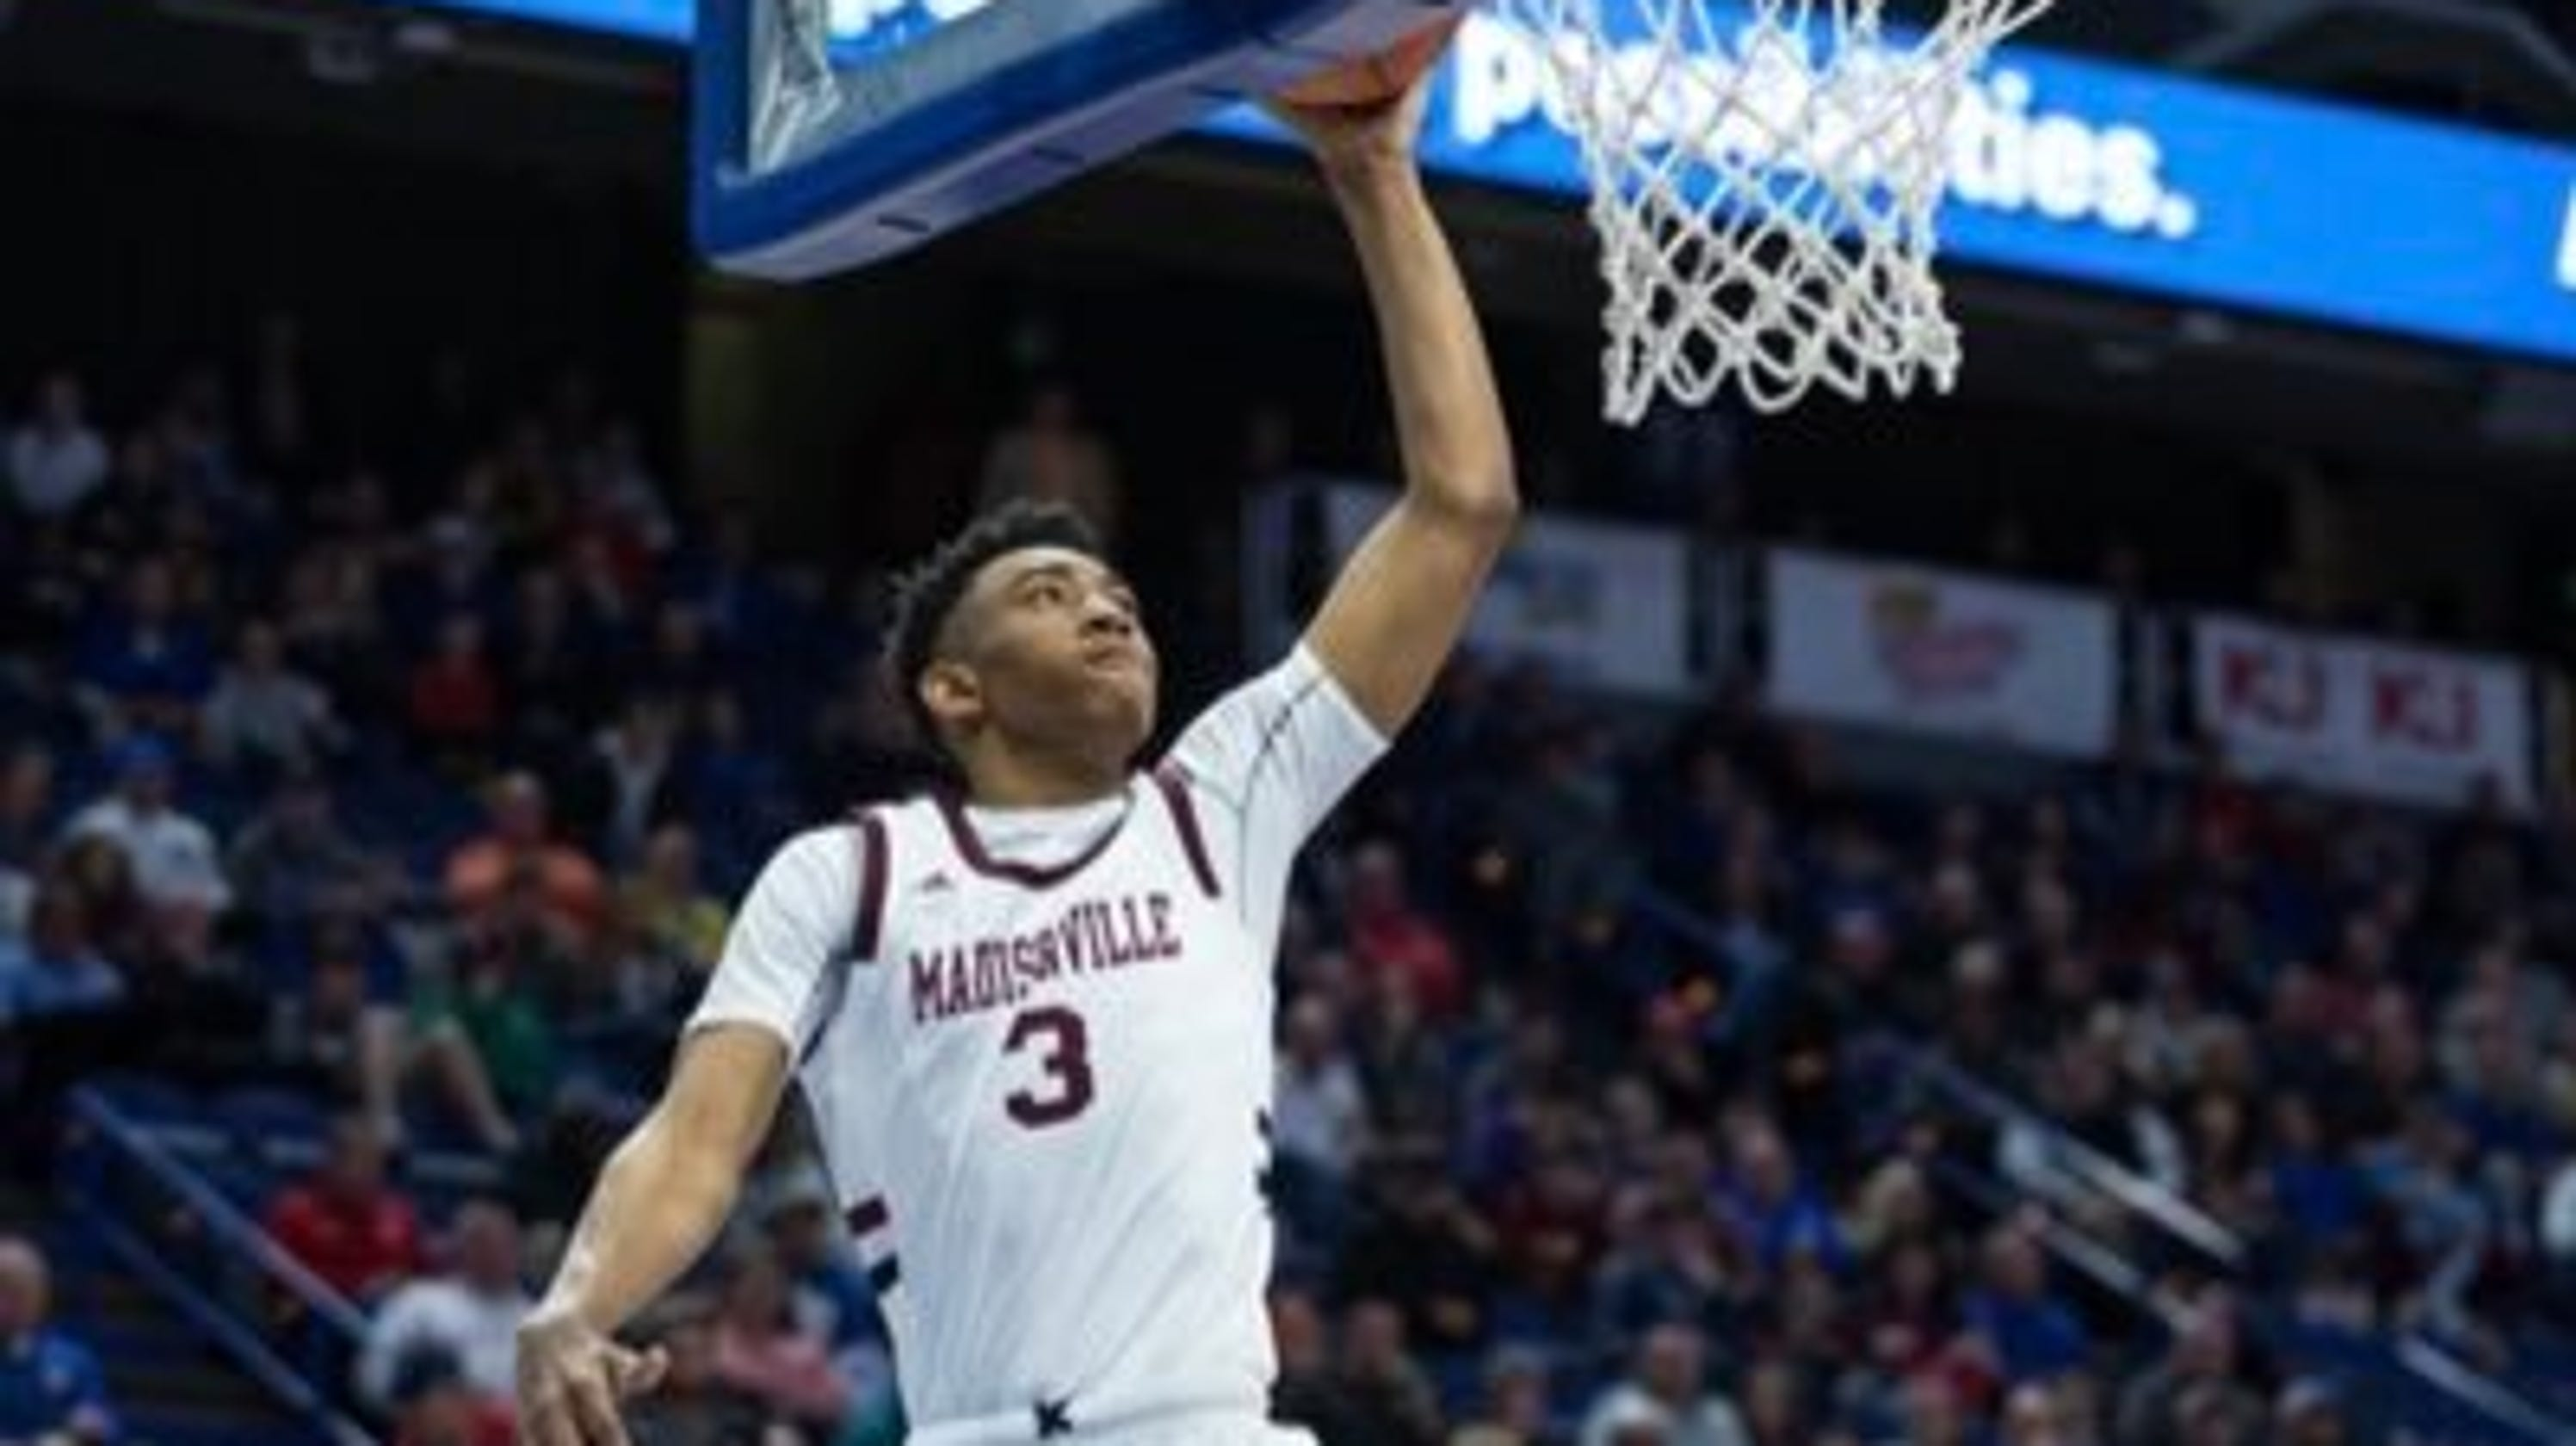 Indiana Basketball Schedule 2020-21 UE basketball targeting frontcourt to fill lone 2020 21 roster spot